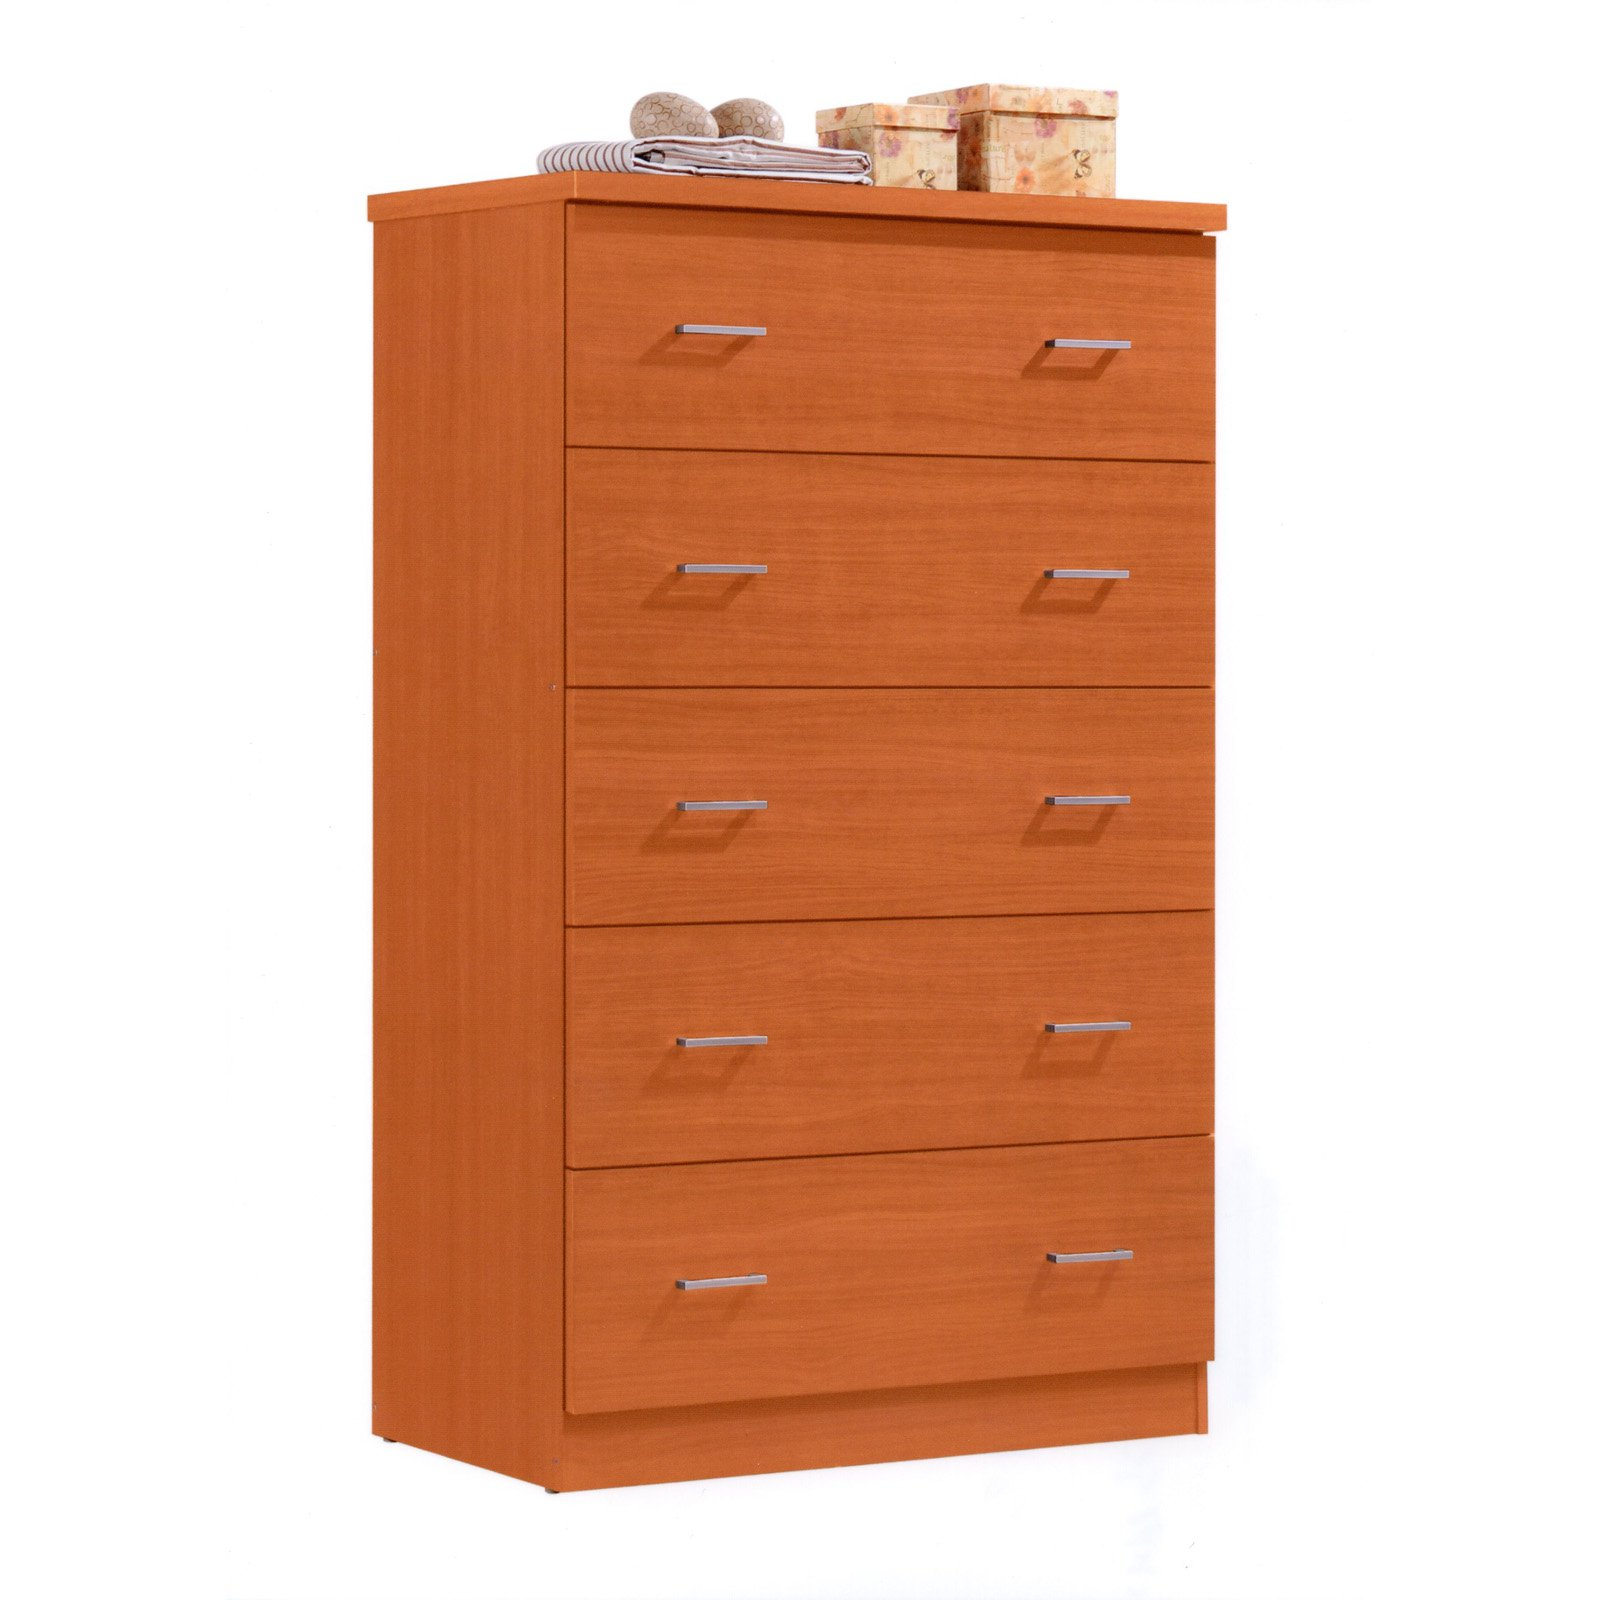 Hodedah Imports Jumbo 5 Drawer Chest